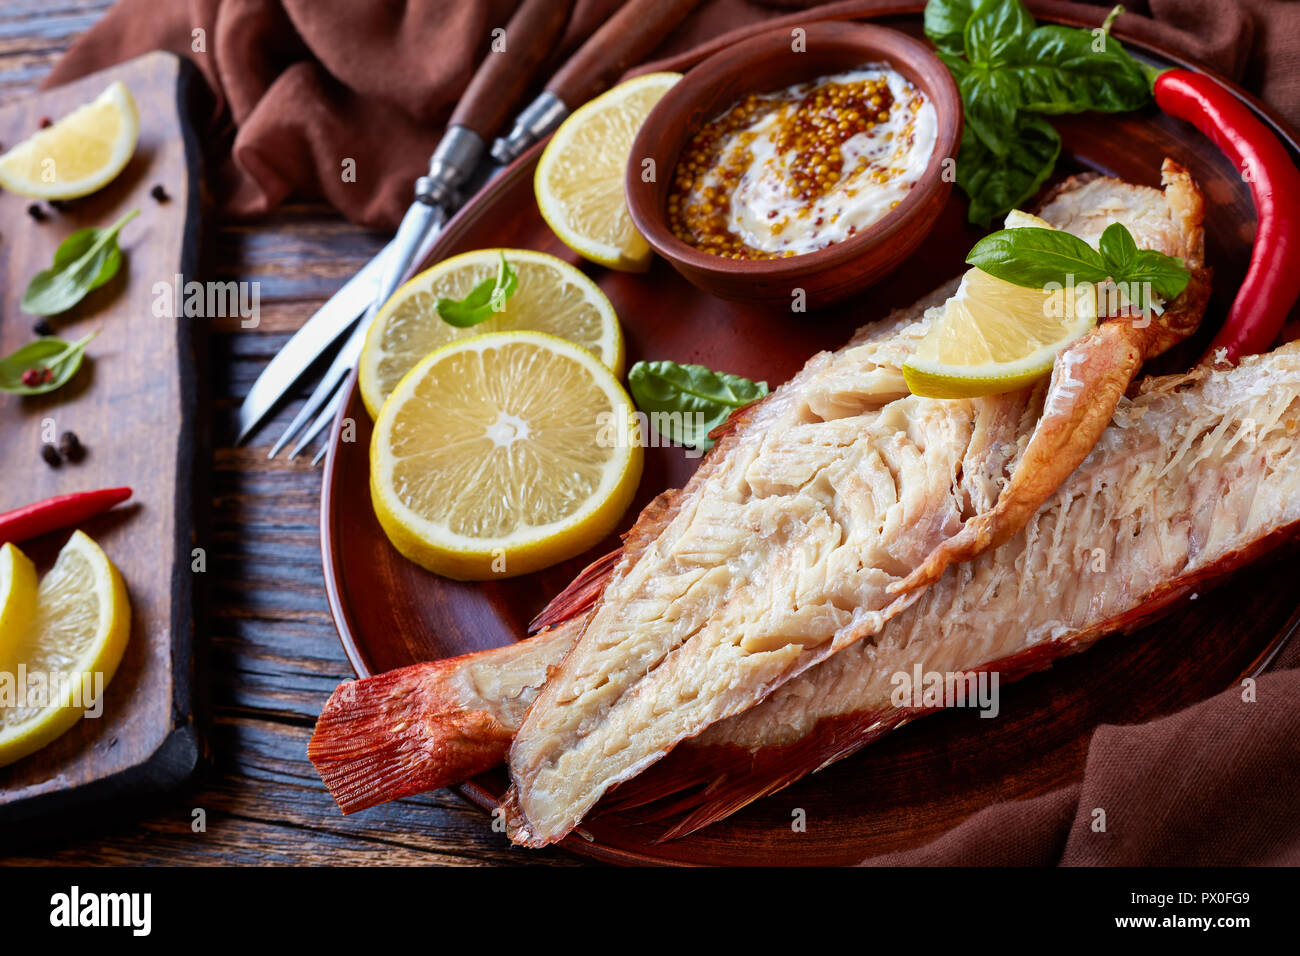 fillet of  red snapper served on a earthenware plate with fresh basil leaves, lemon slices and mustard sauce, fork and knife on a wooden rustic table, Stock Photo